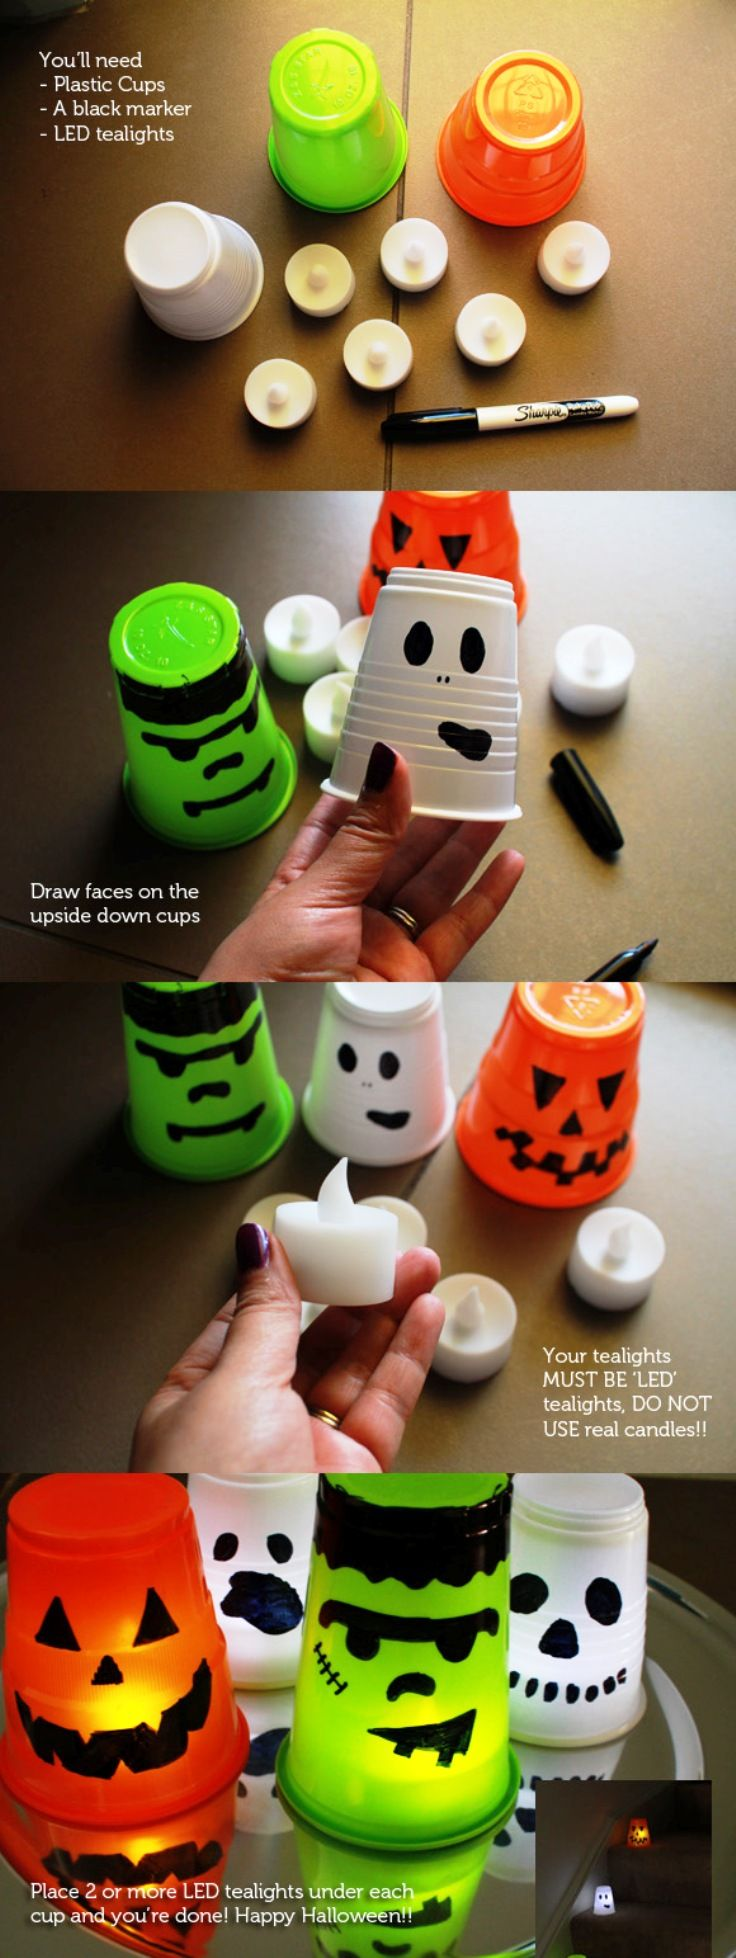 Top 10 Best DIY Halloween Projectscute, easy ideas for young kids - cute homemade halloween decorations